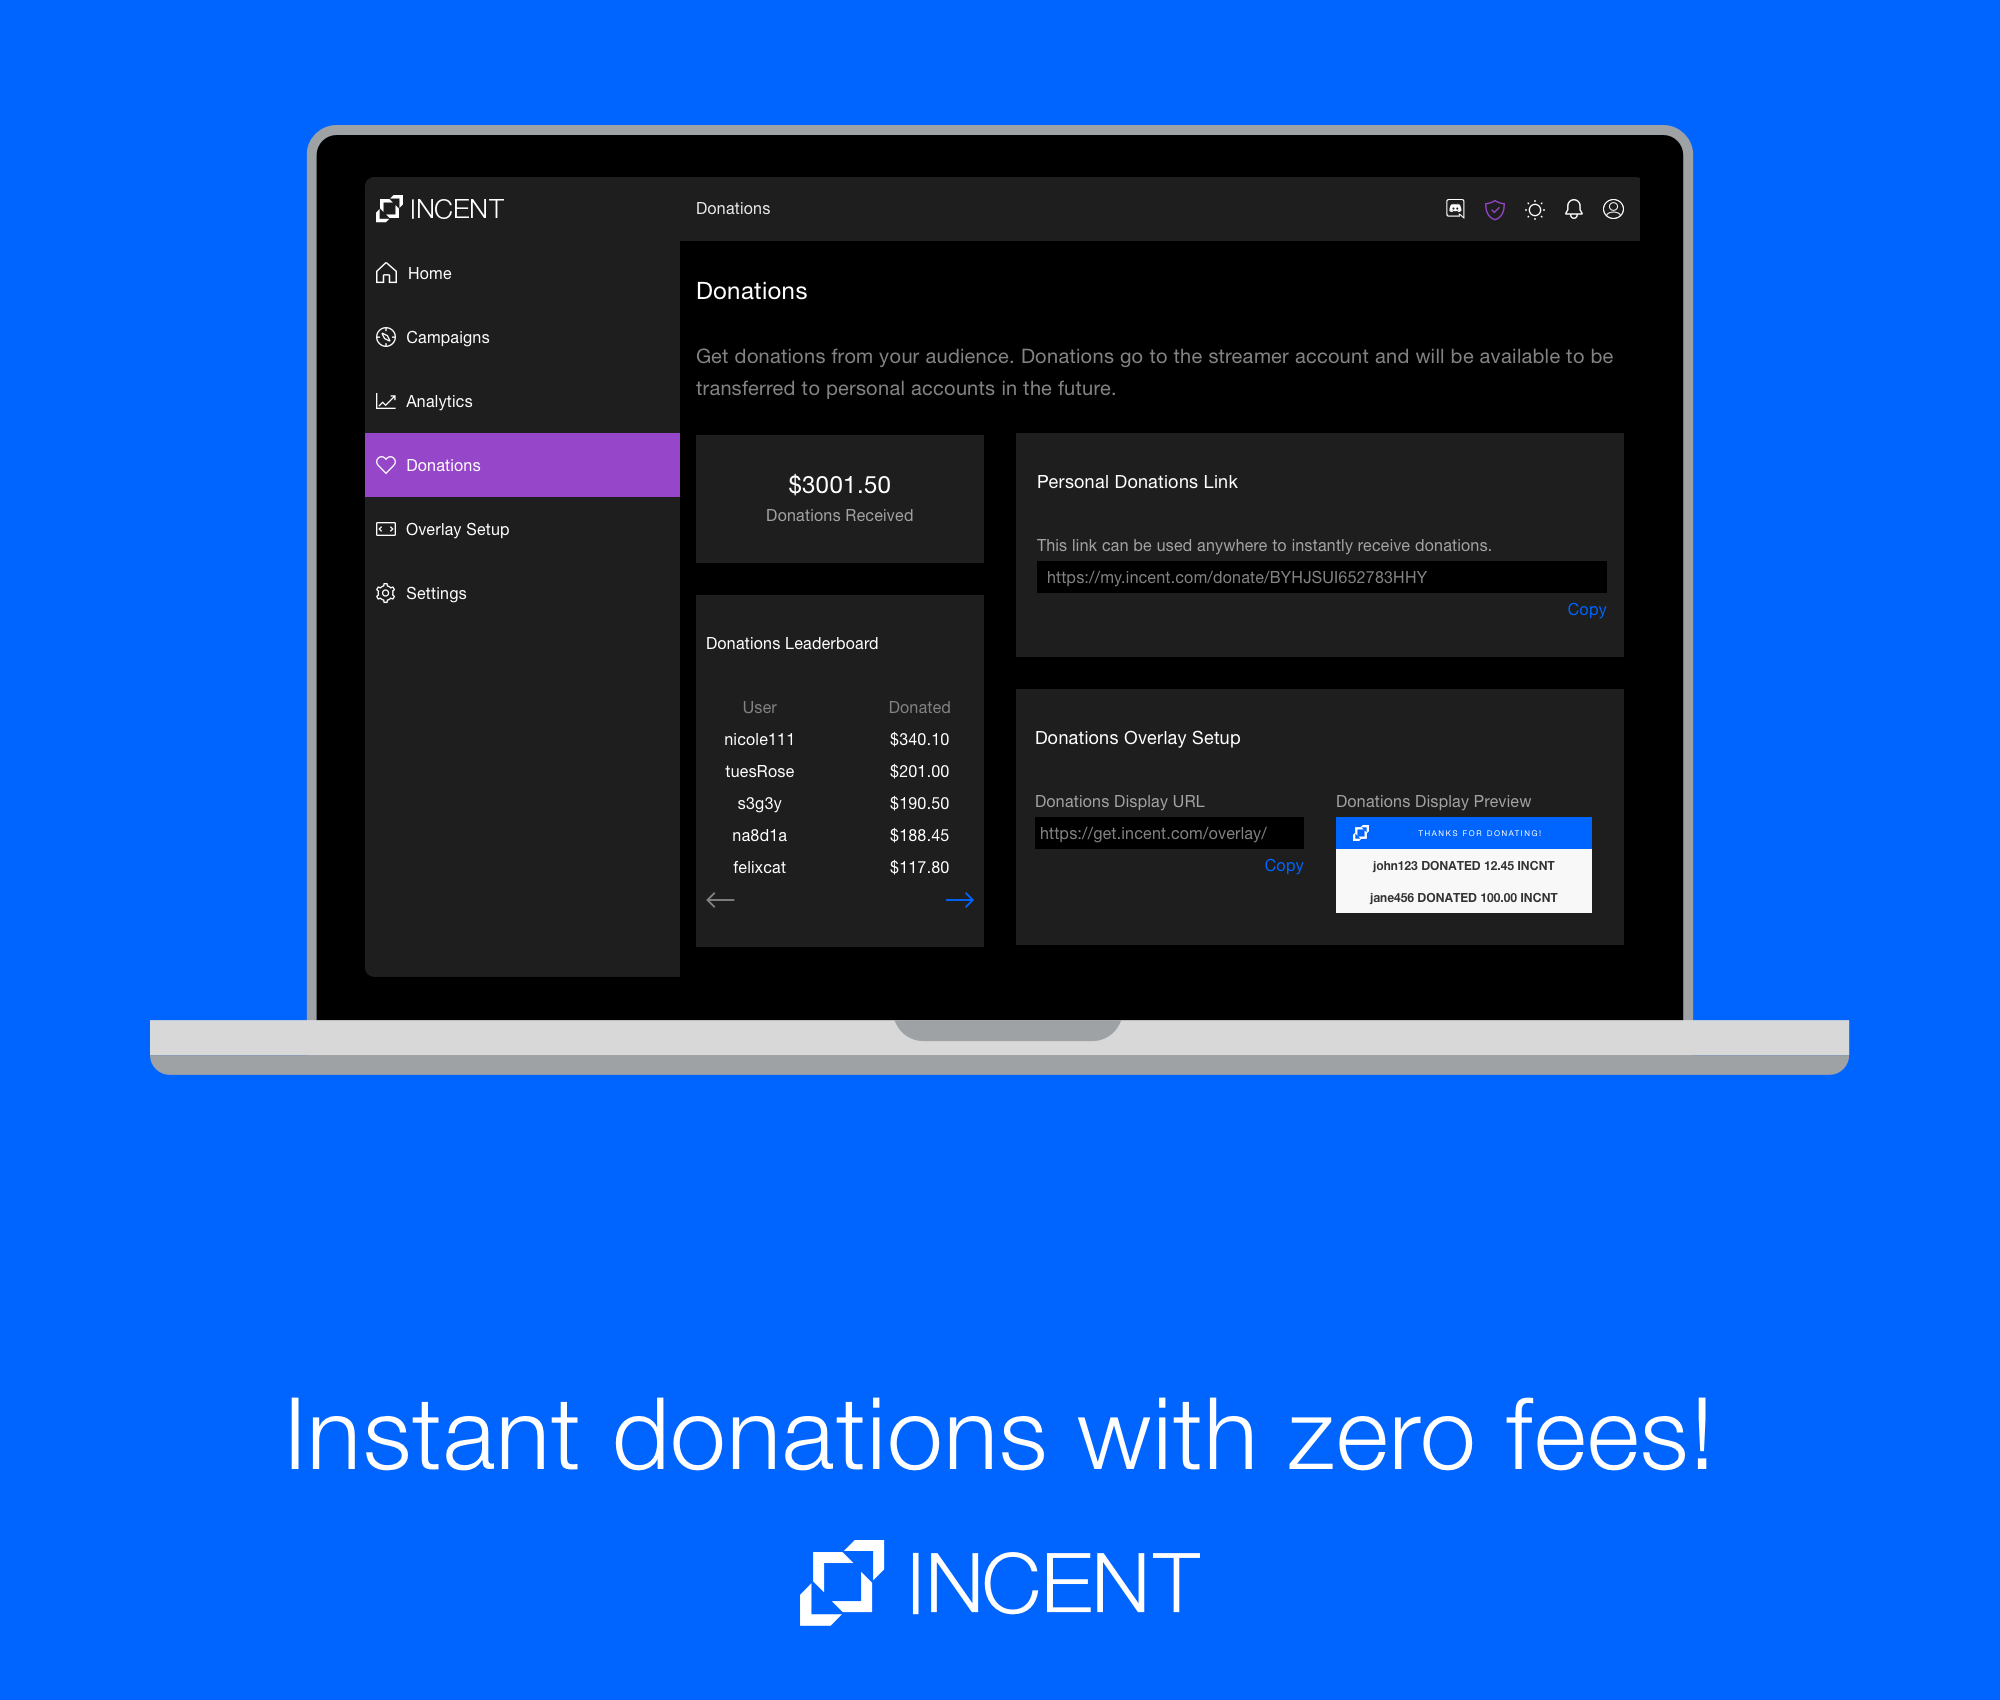 ingage_app_-_donations_-_1_device.png